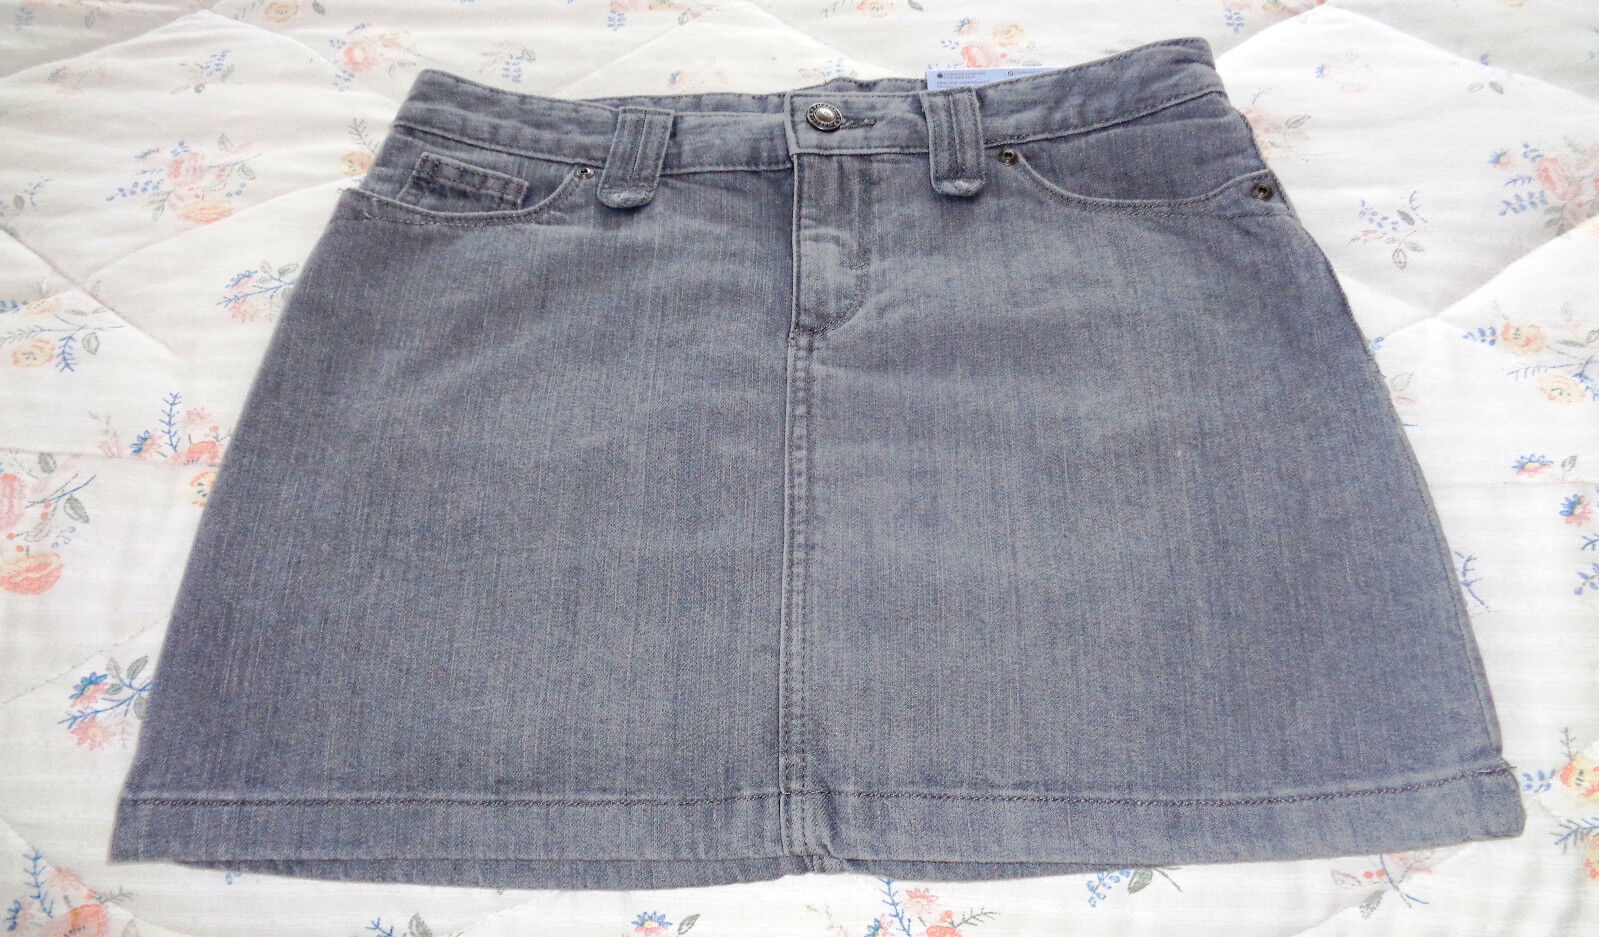 WOW NEW WITH TAGS NWT  69 Patagonia Iron Clad Denim Skirt Womens W Size 4 L@@K